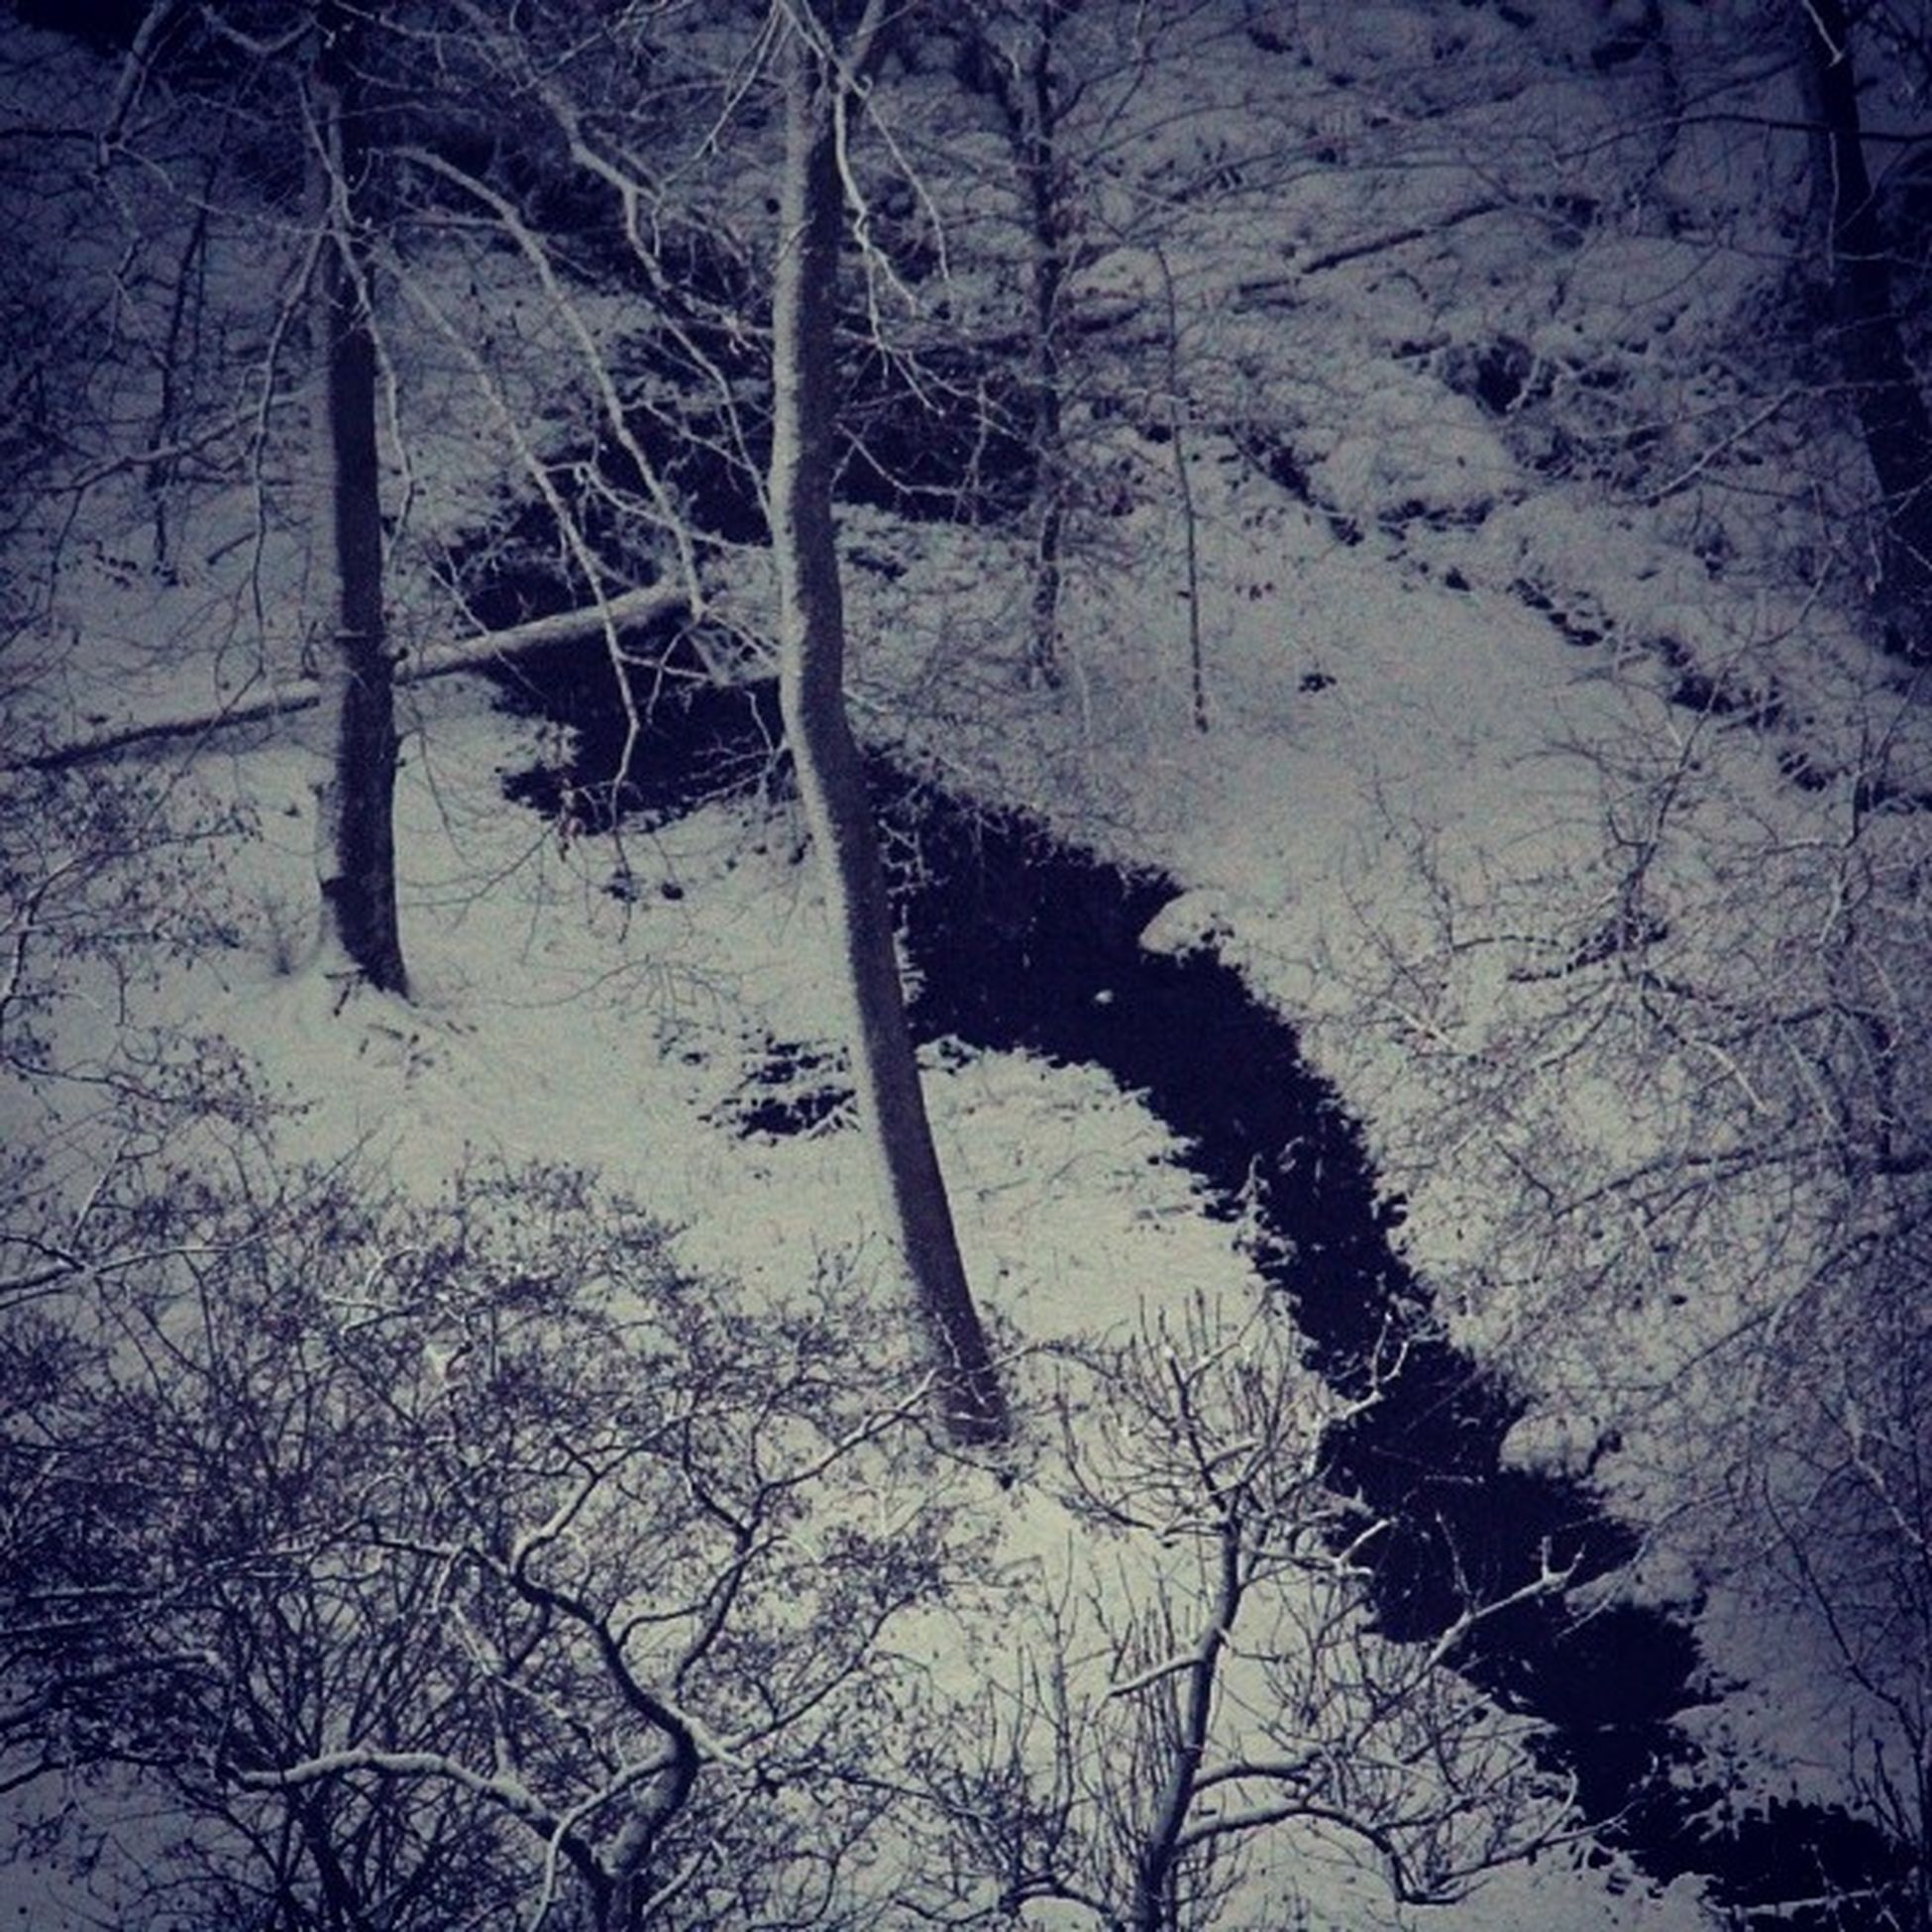 The small creek is still open Creek Instacreek River Instariver snow trees instatrees instablue winter instawinter white could Instagood Photooftheday Followme Beautiful Picoftheday Instadaily Amazing All_shots Instacool Cool Nature Instapic Igdaily Picstitch Instaphoto Goodmorning